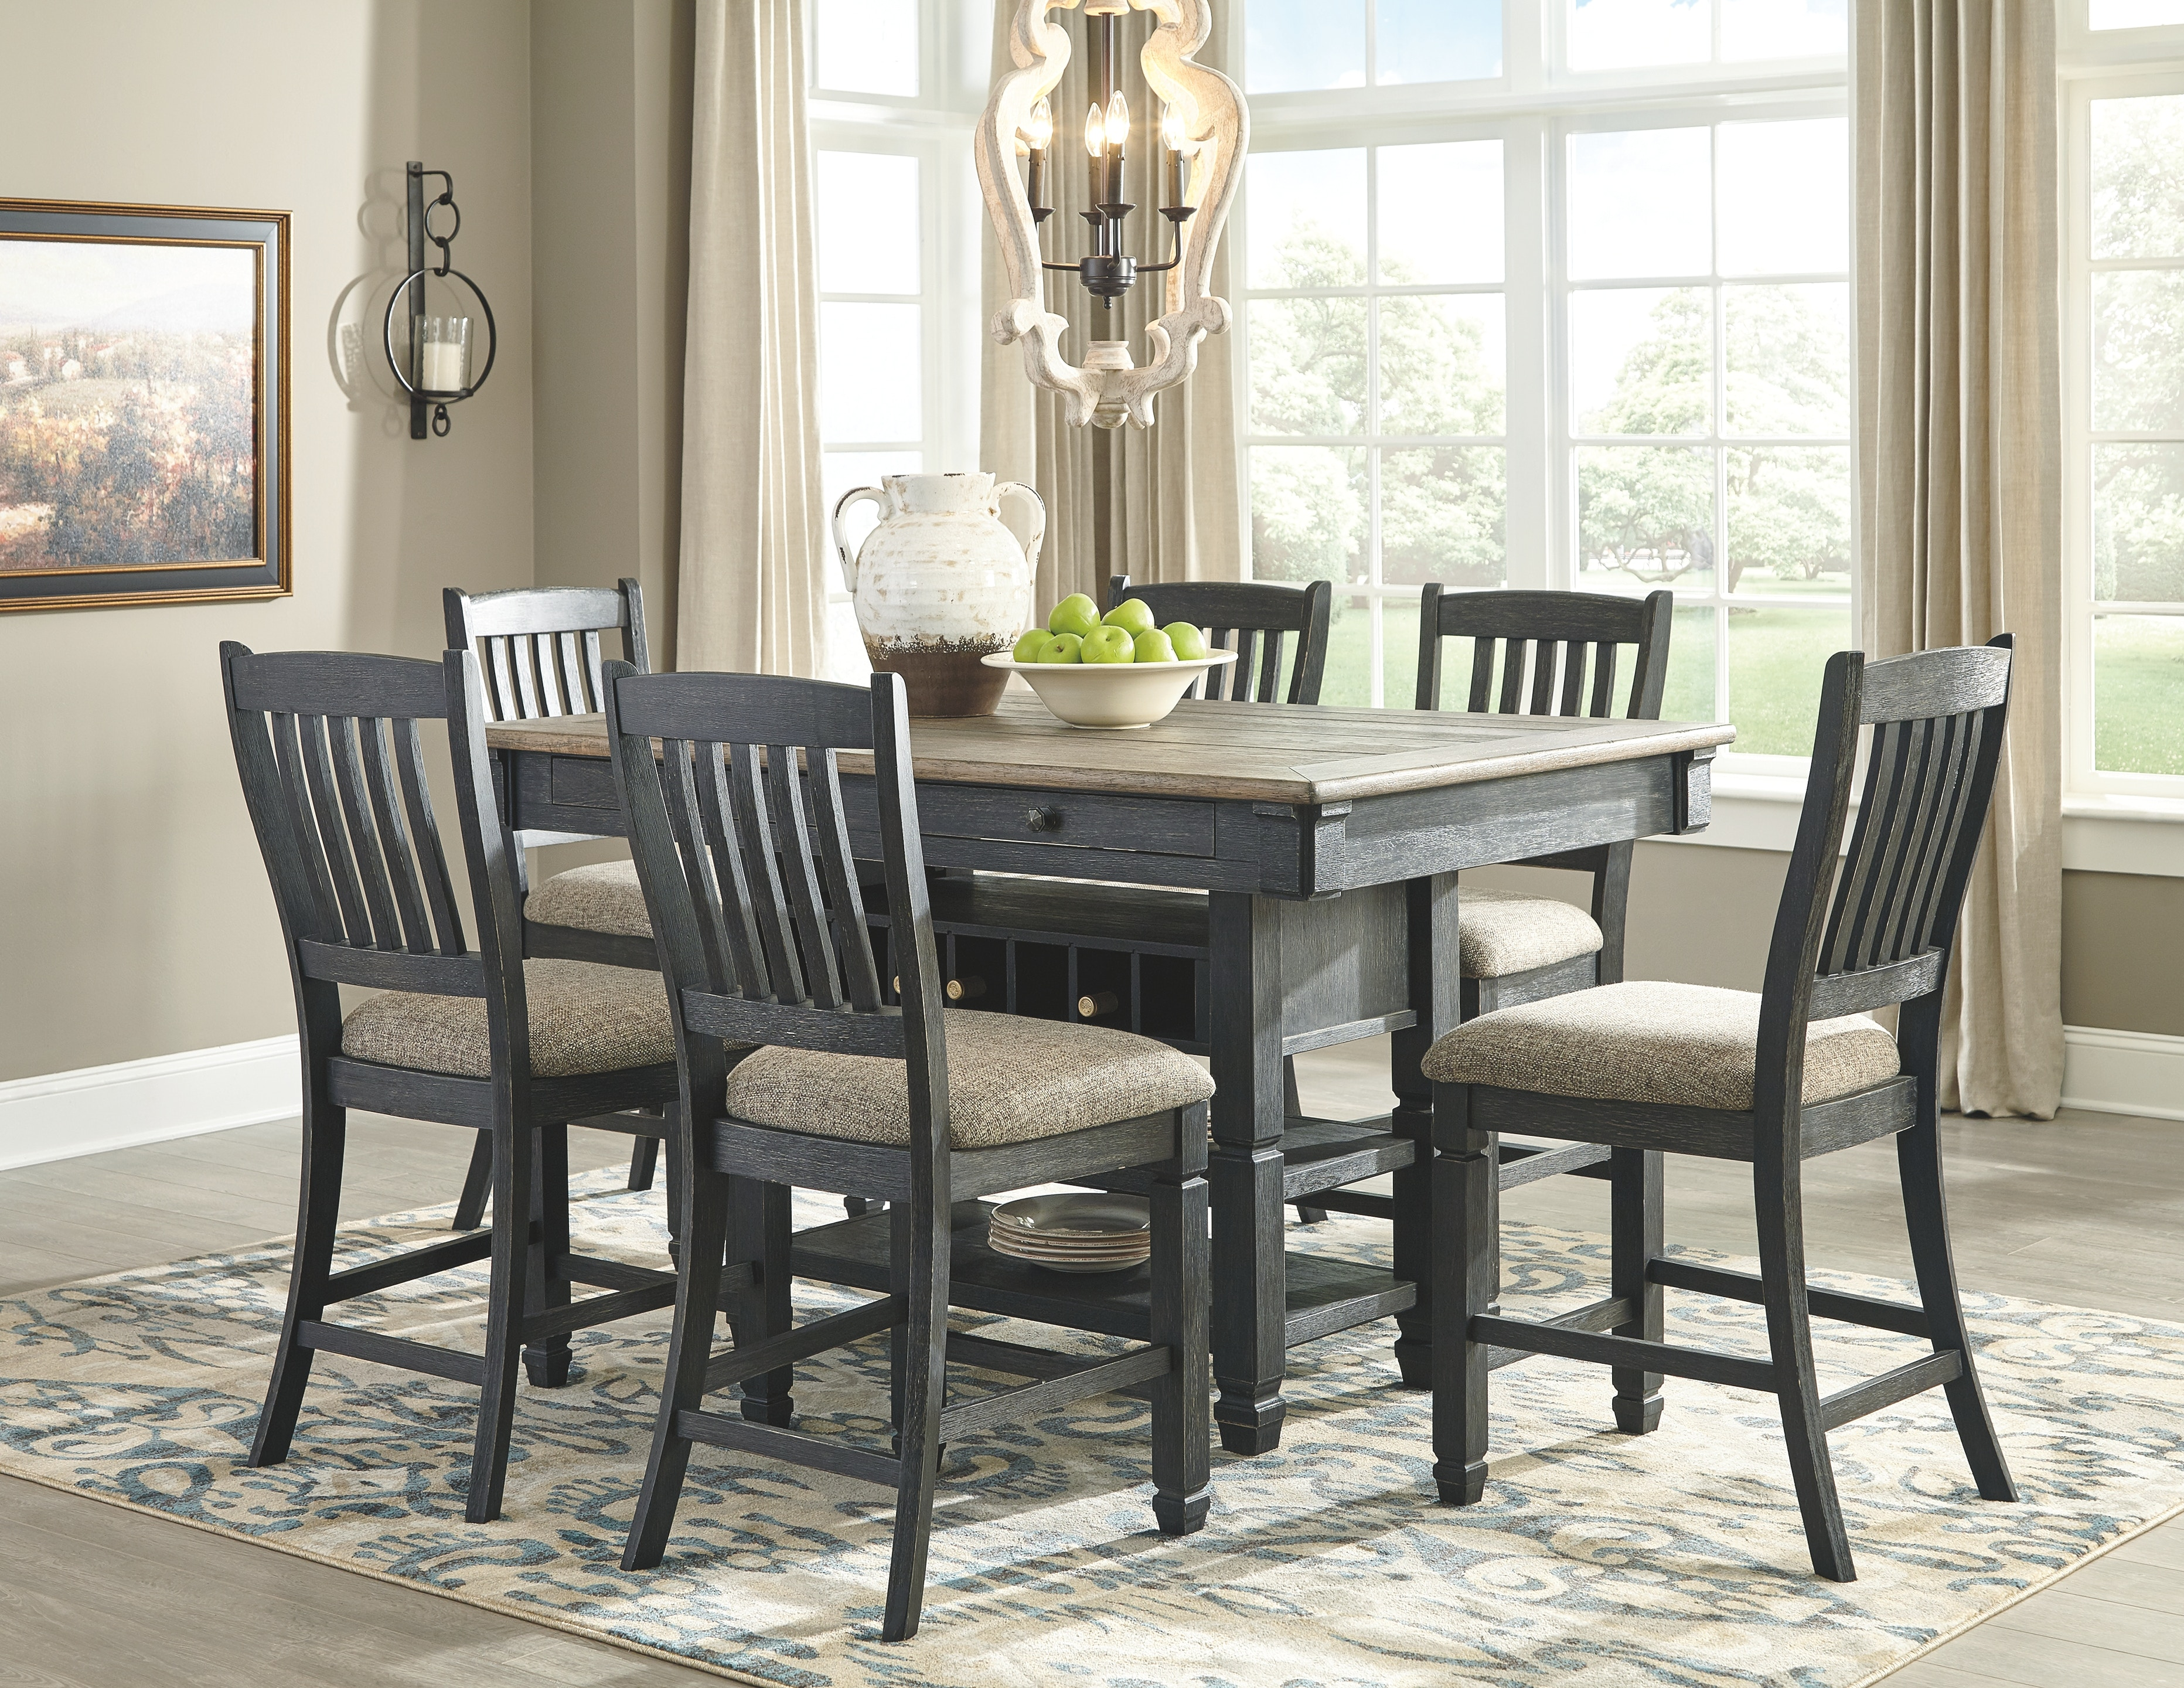 Signature Design By Ashley RECT Dining Room Counter Table D736 32